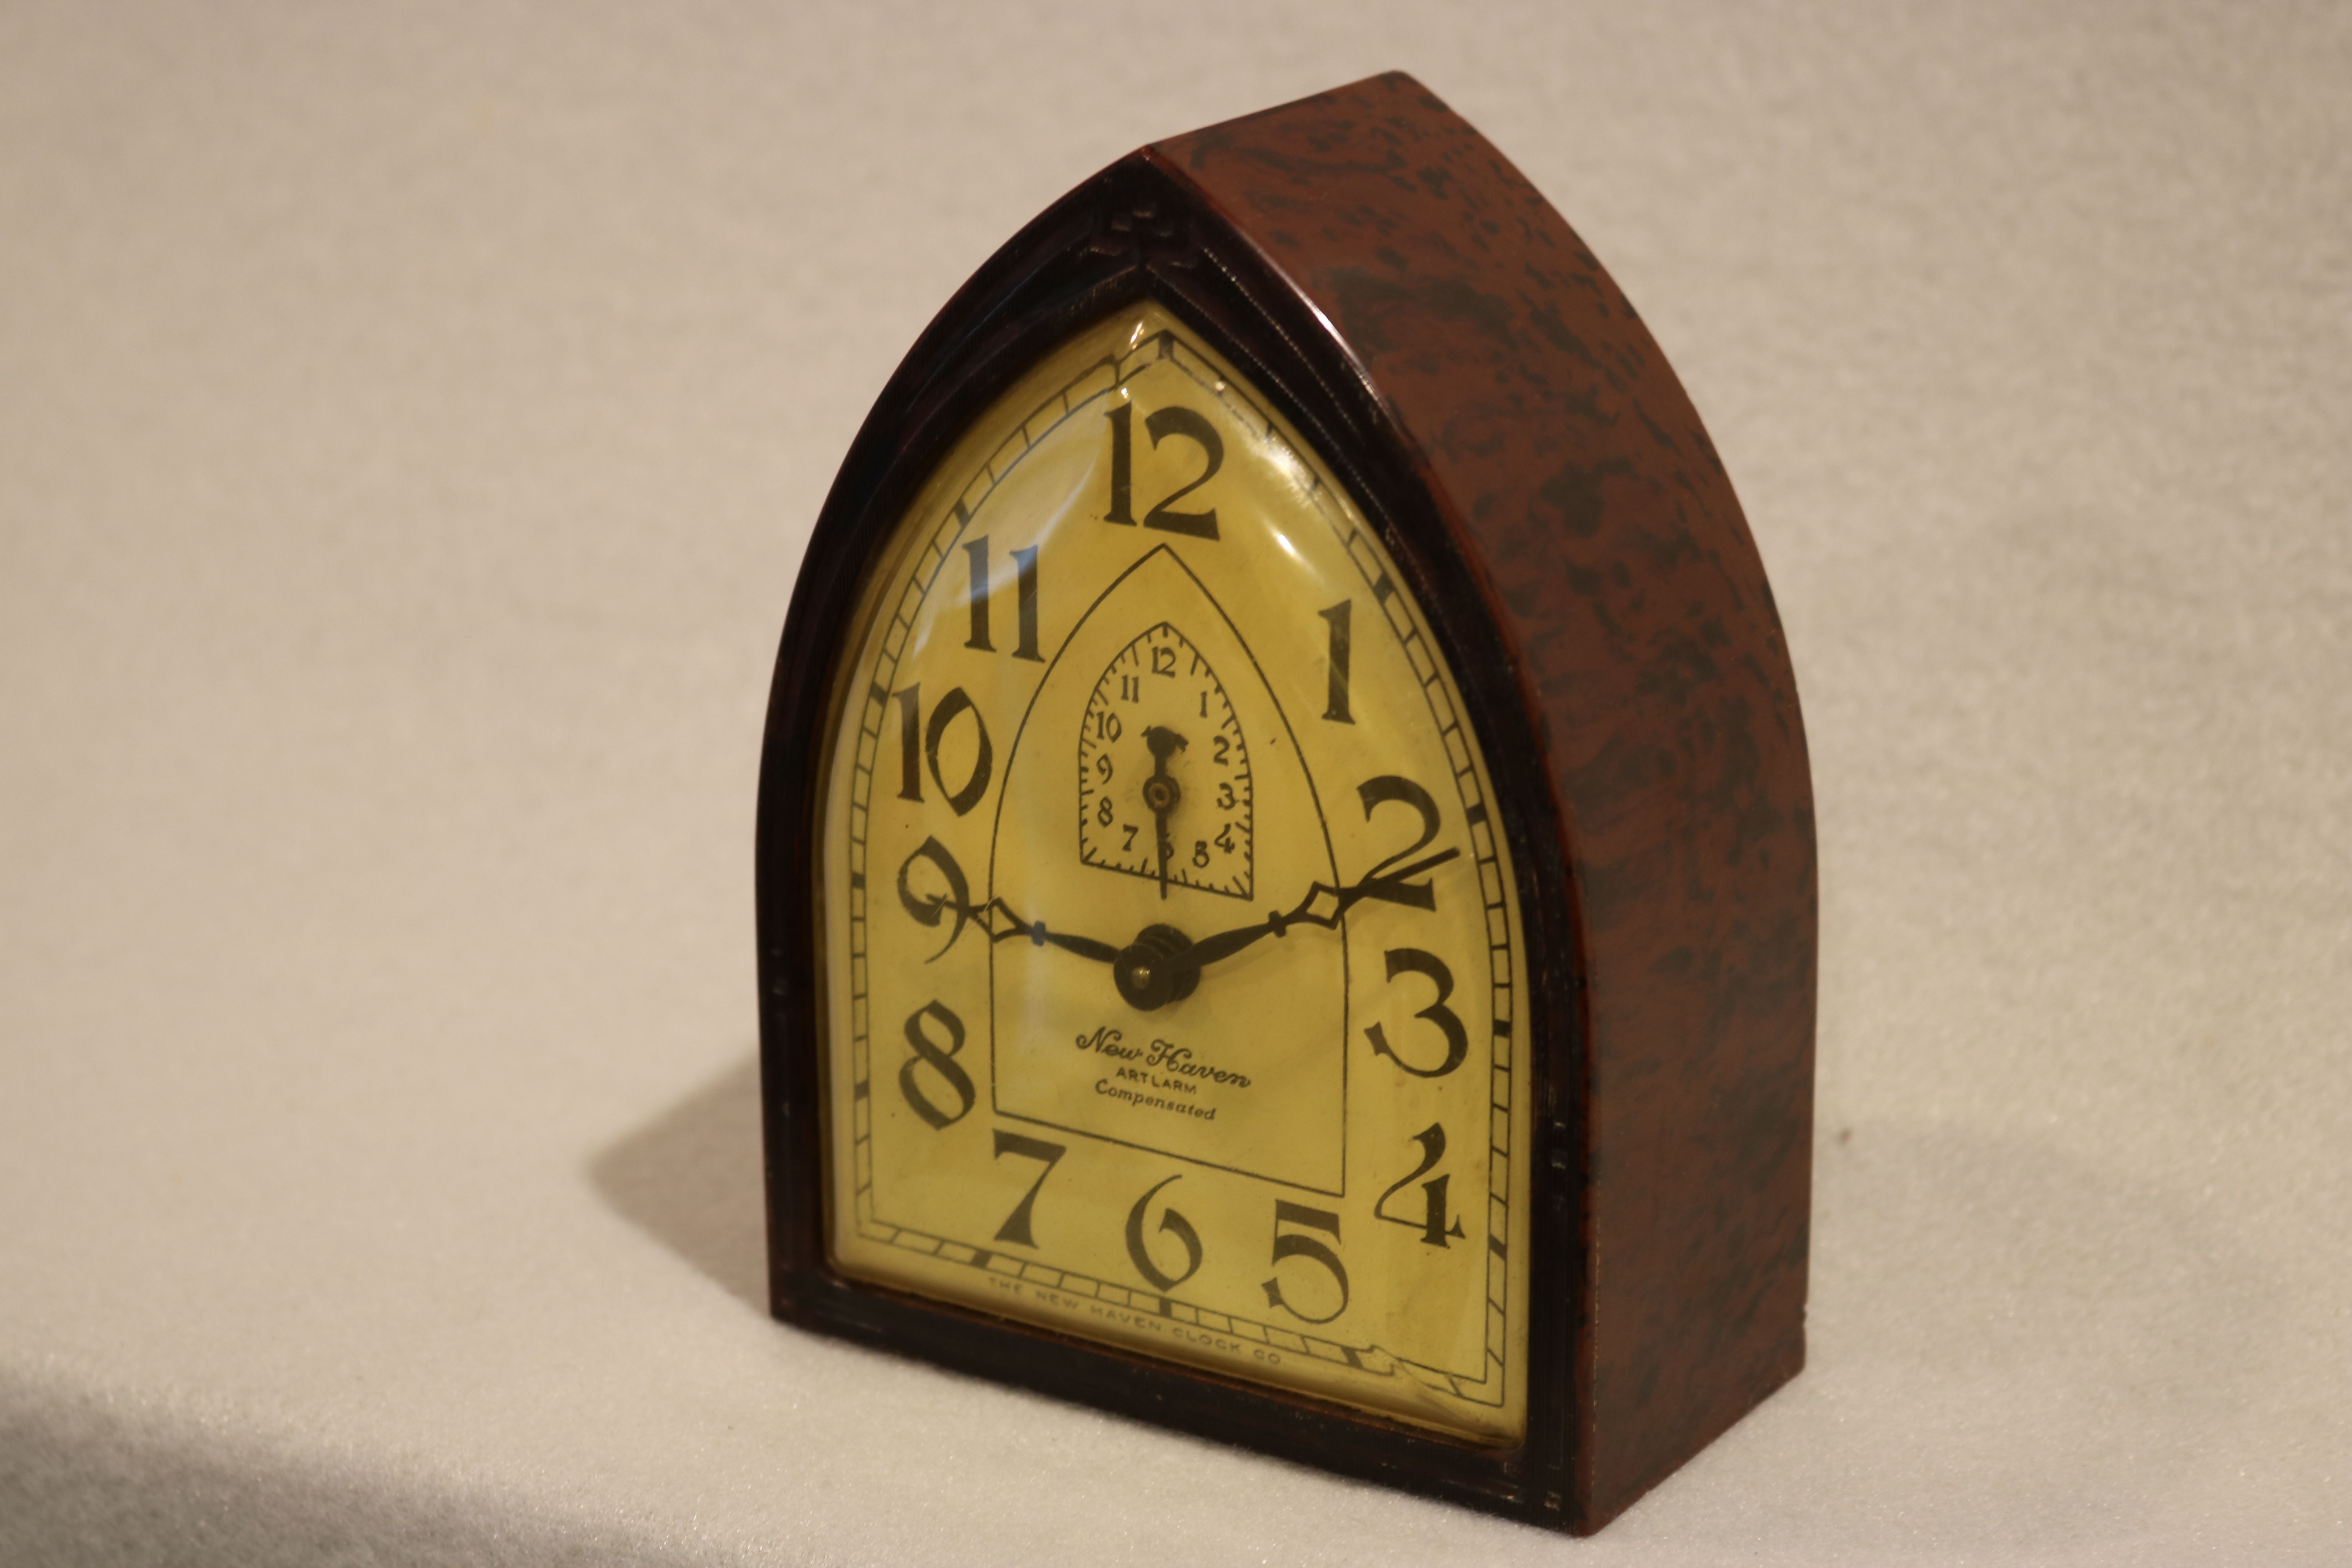 from Matthias dating new haven clocks